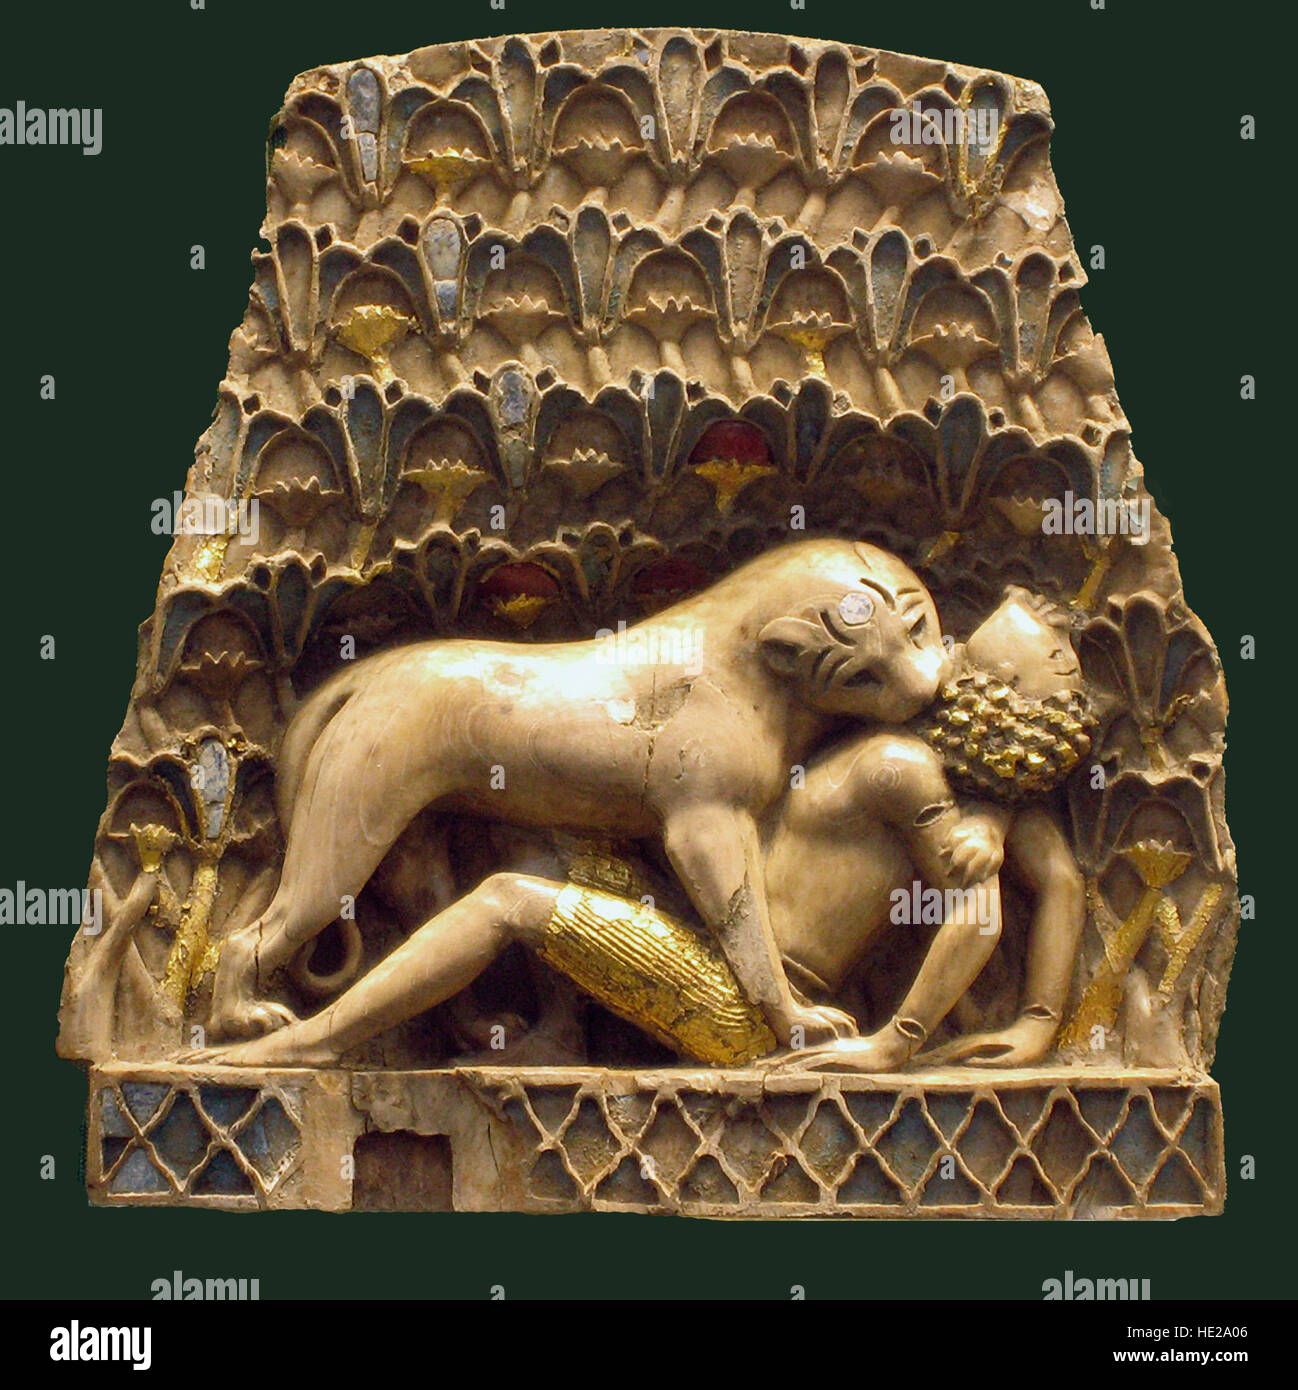 6013. Ivory plaque depicting a lioness attacking a boy. Nimrud, Mesopotamia, 899-700 BC. - Stock Image